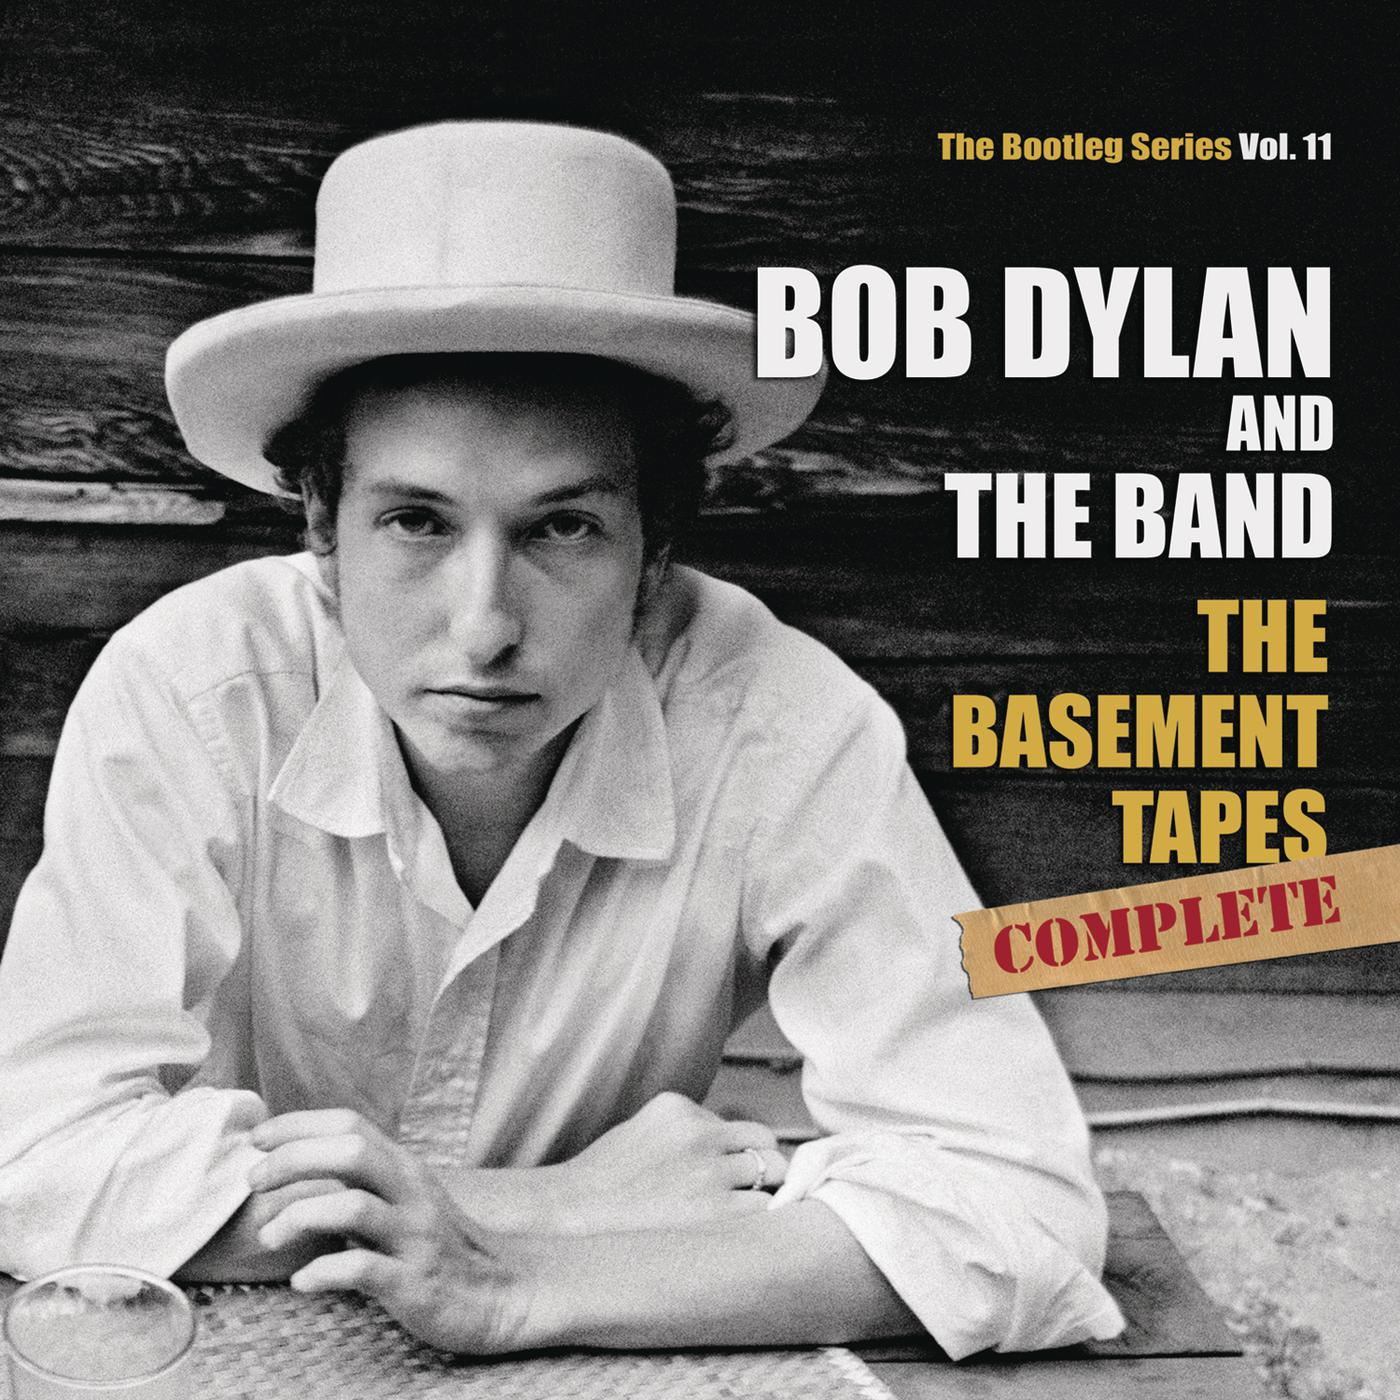 Bob Dylan & The Band - The Bootleg Series, Vol. 11: The Basement Tapes (Complete Edition '2014) [Official Digital Download]